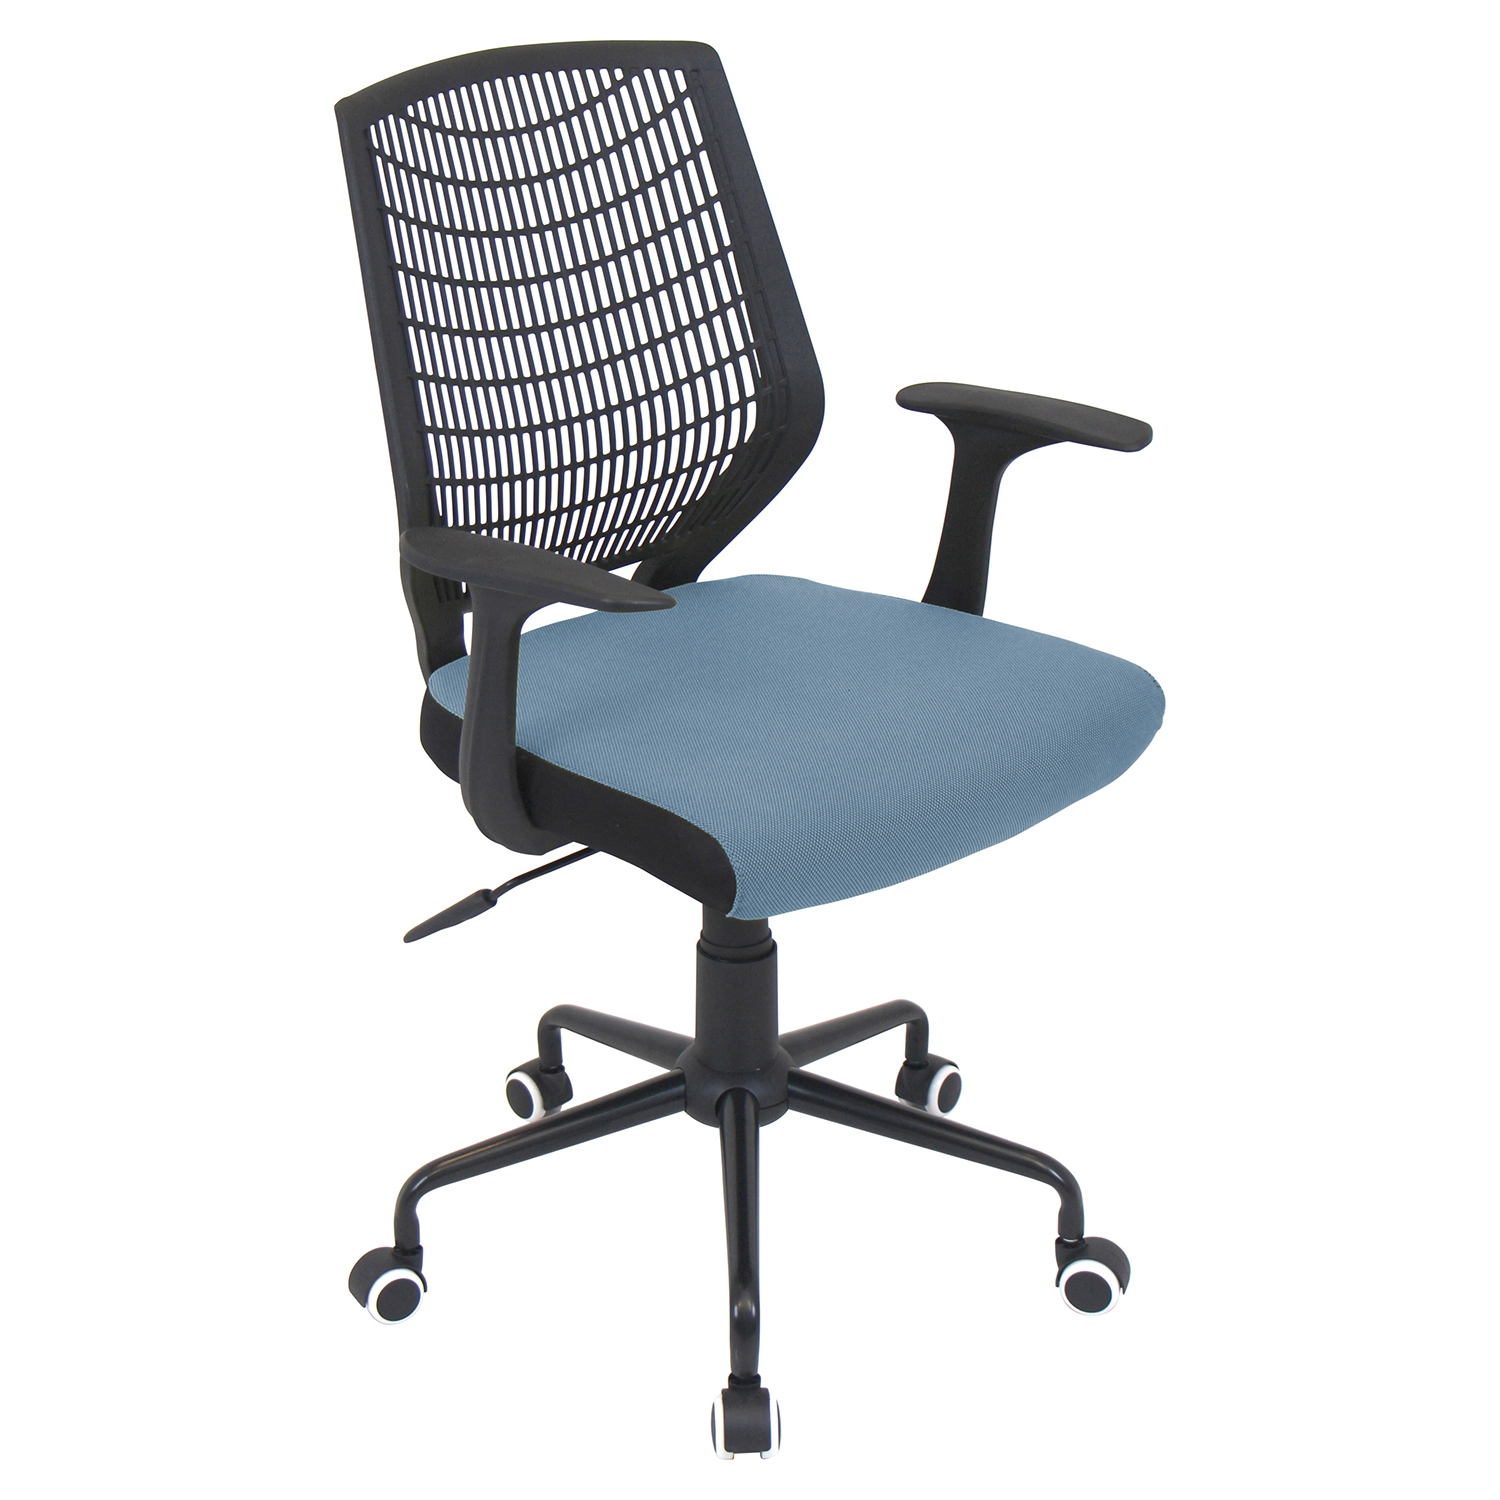 Network Height Adjustable Office Chair - Swivel, Black, Smoked Blue